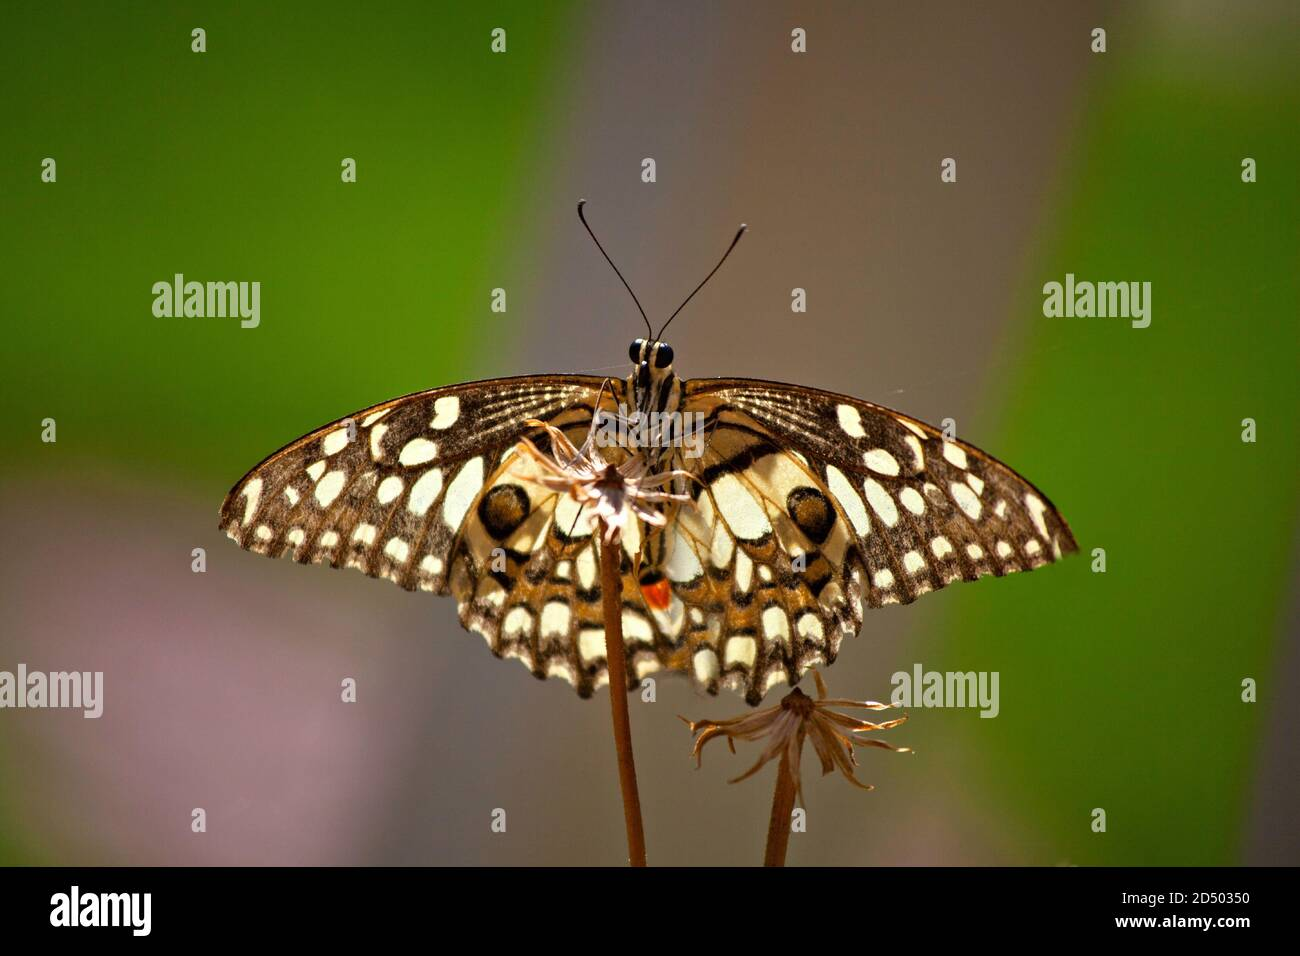 Lime butterfly,Papilio demoleus is a common and widespread swallowtail butterfly. The butterfly is also known as the lime butterfly, lemon butterfly, Stock Photo